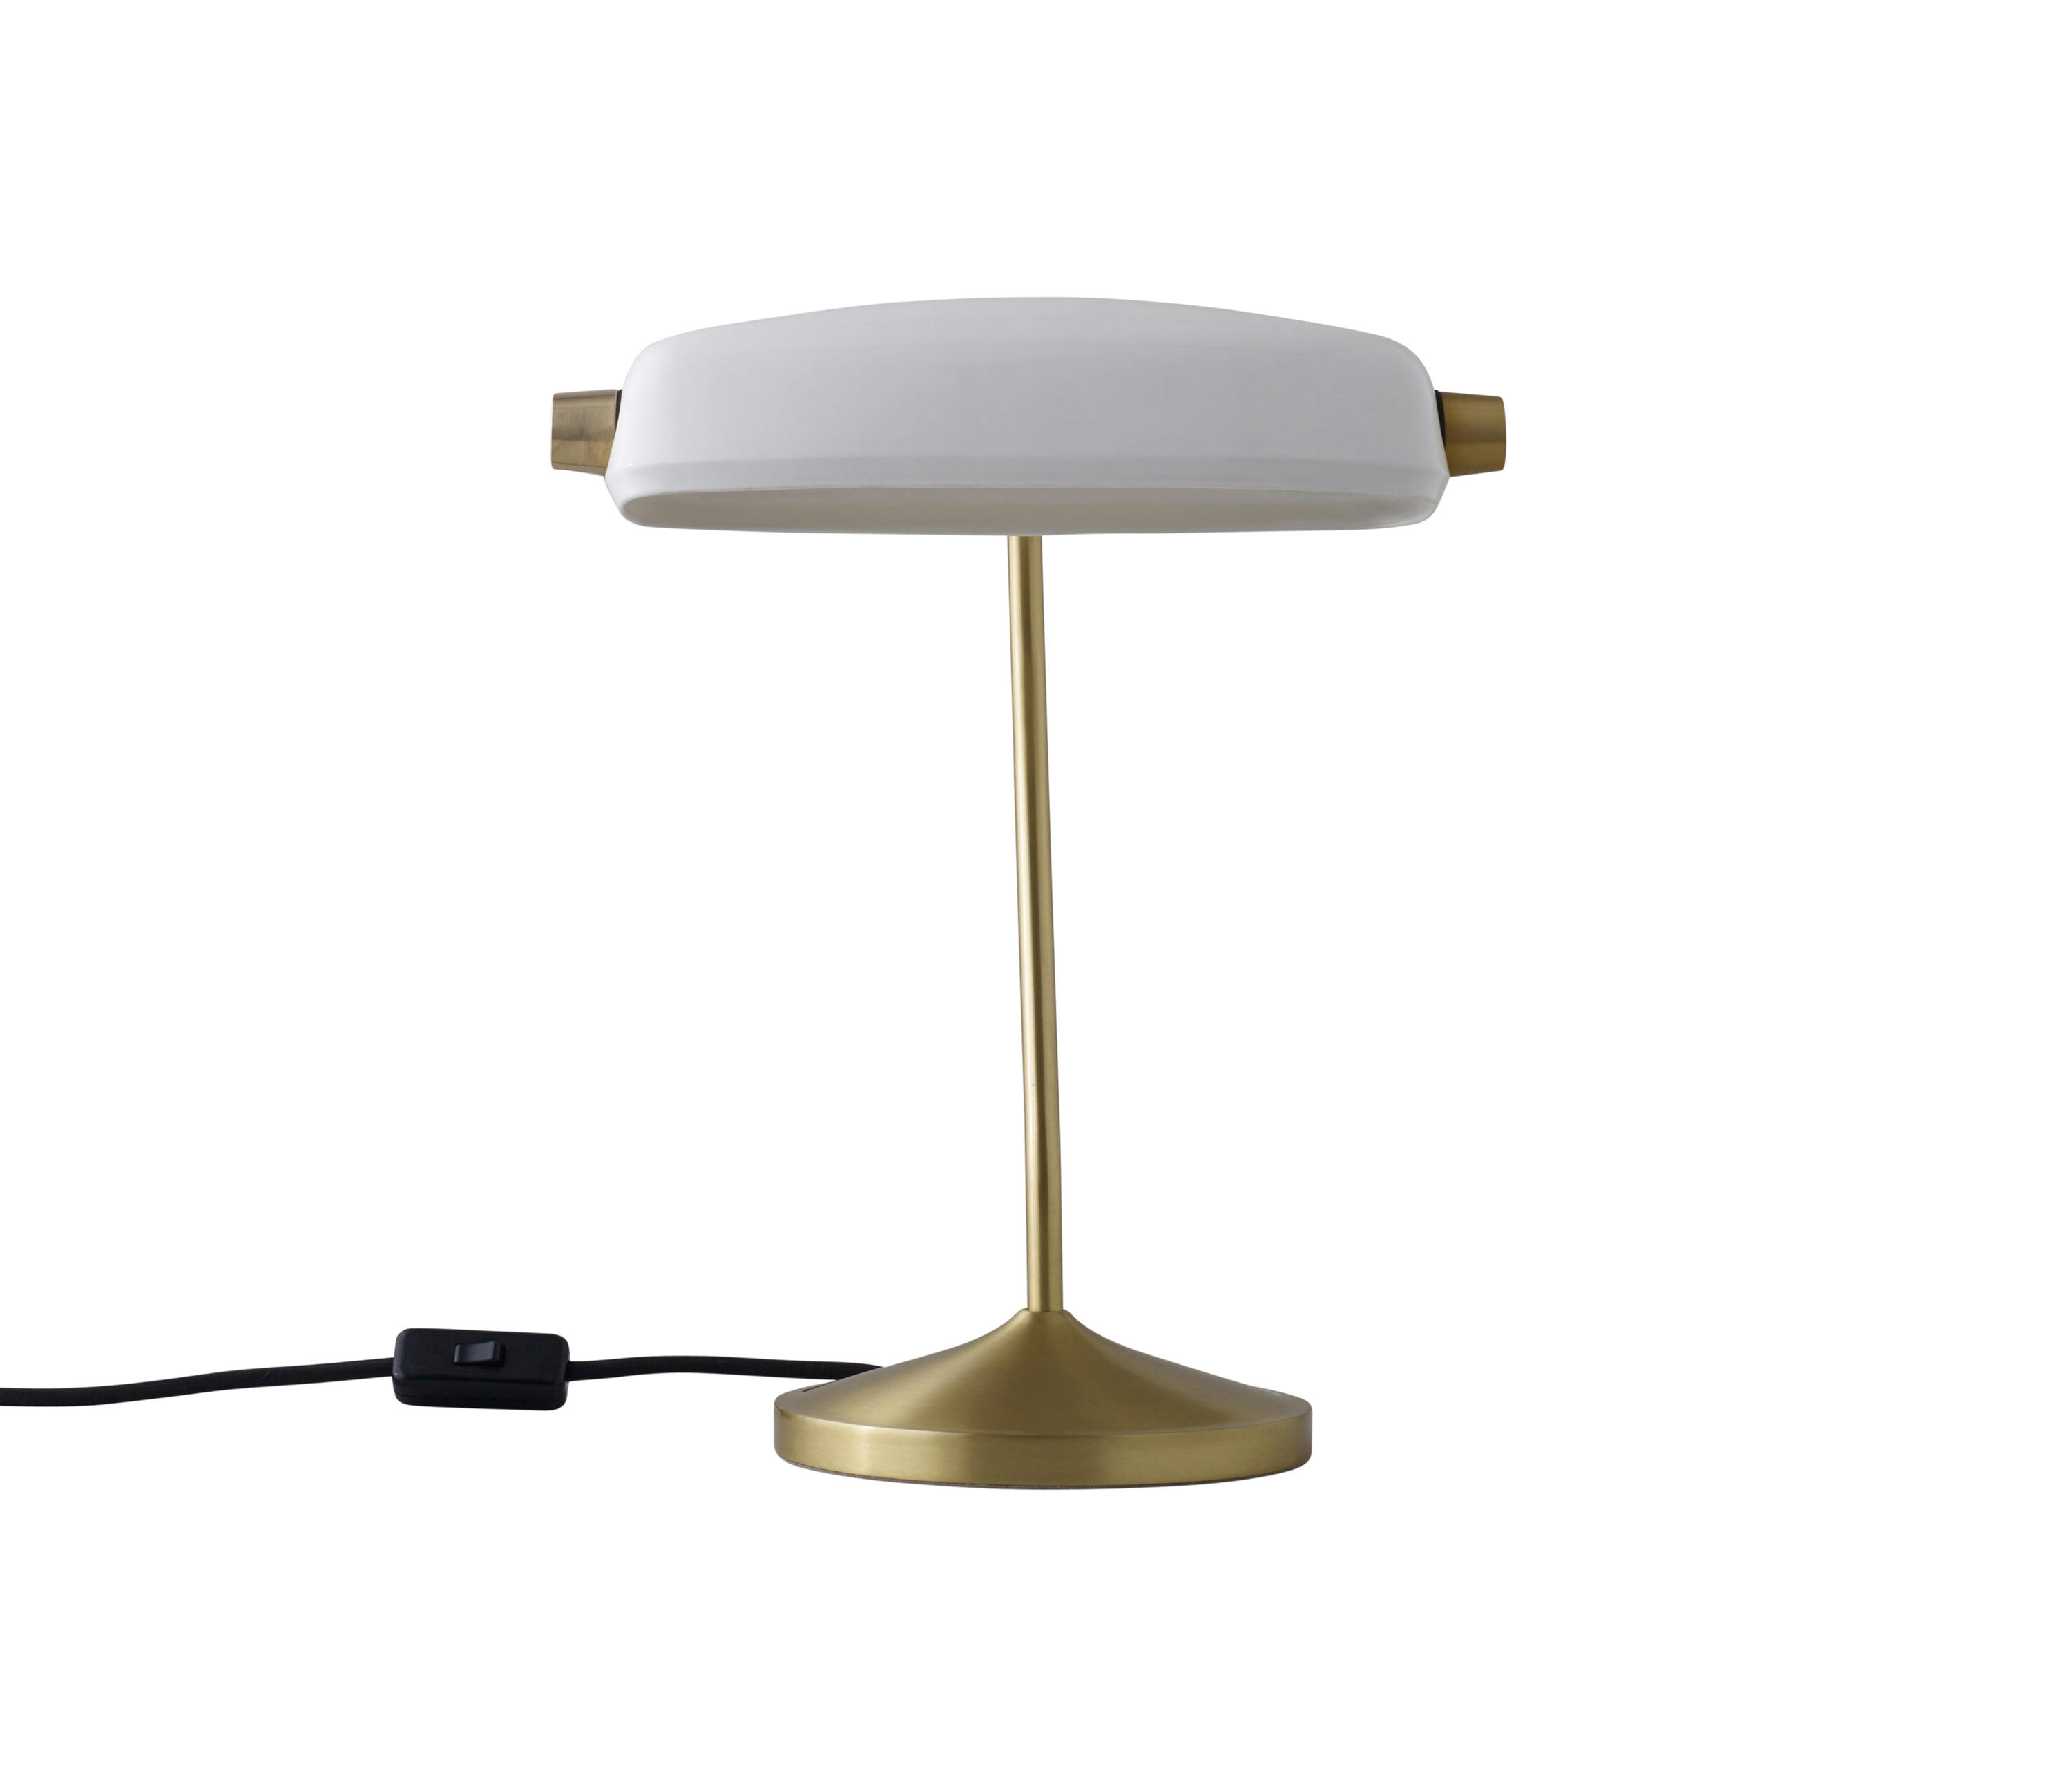 mean lamp innovation most bankers copper arm desk lamps best table glass swing